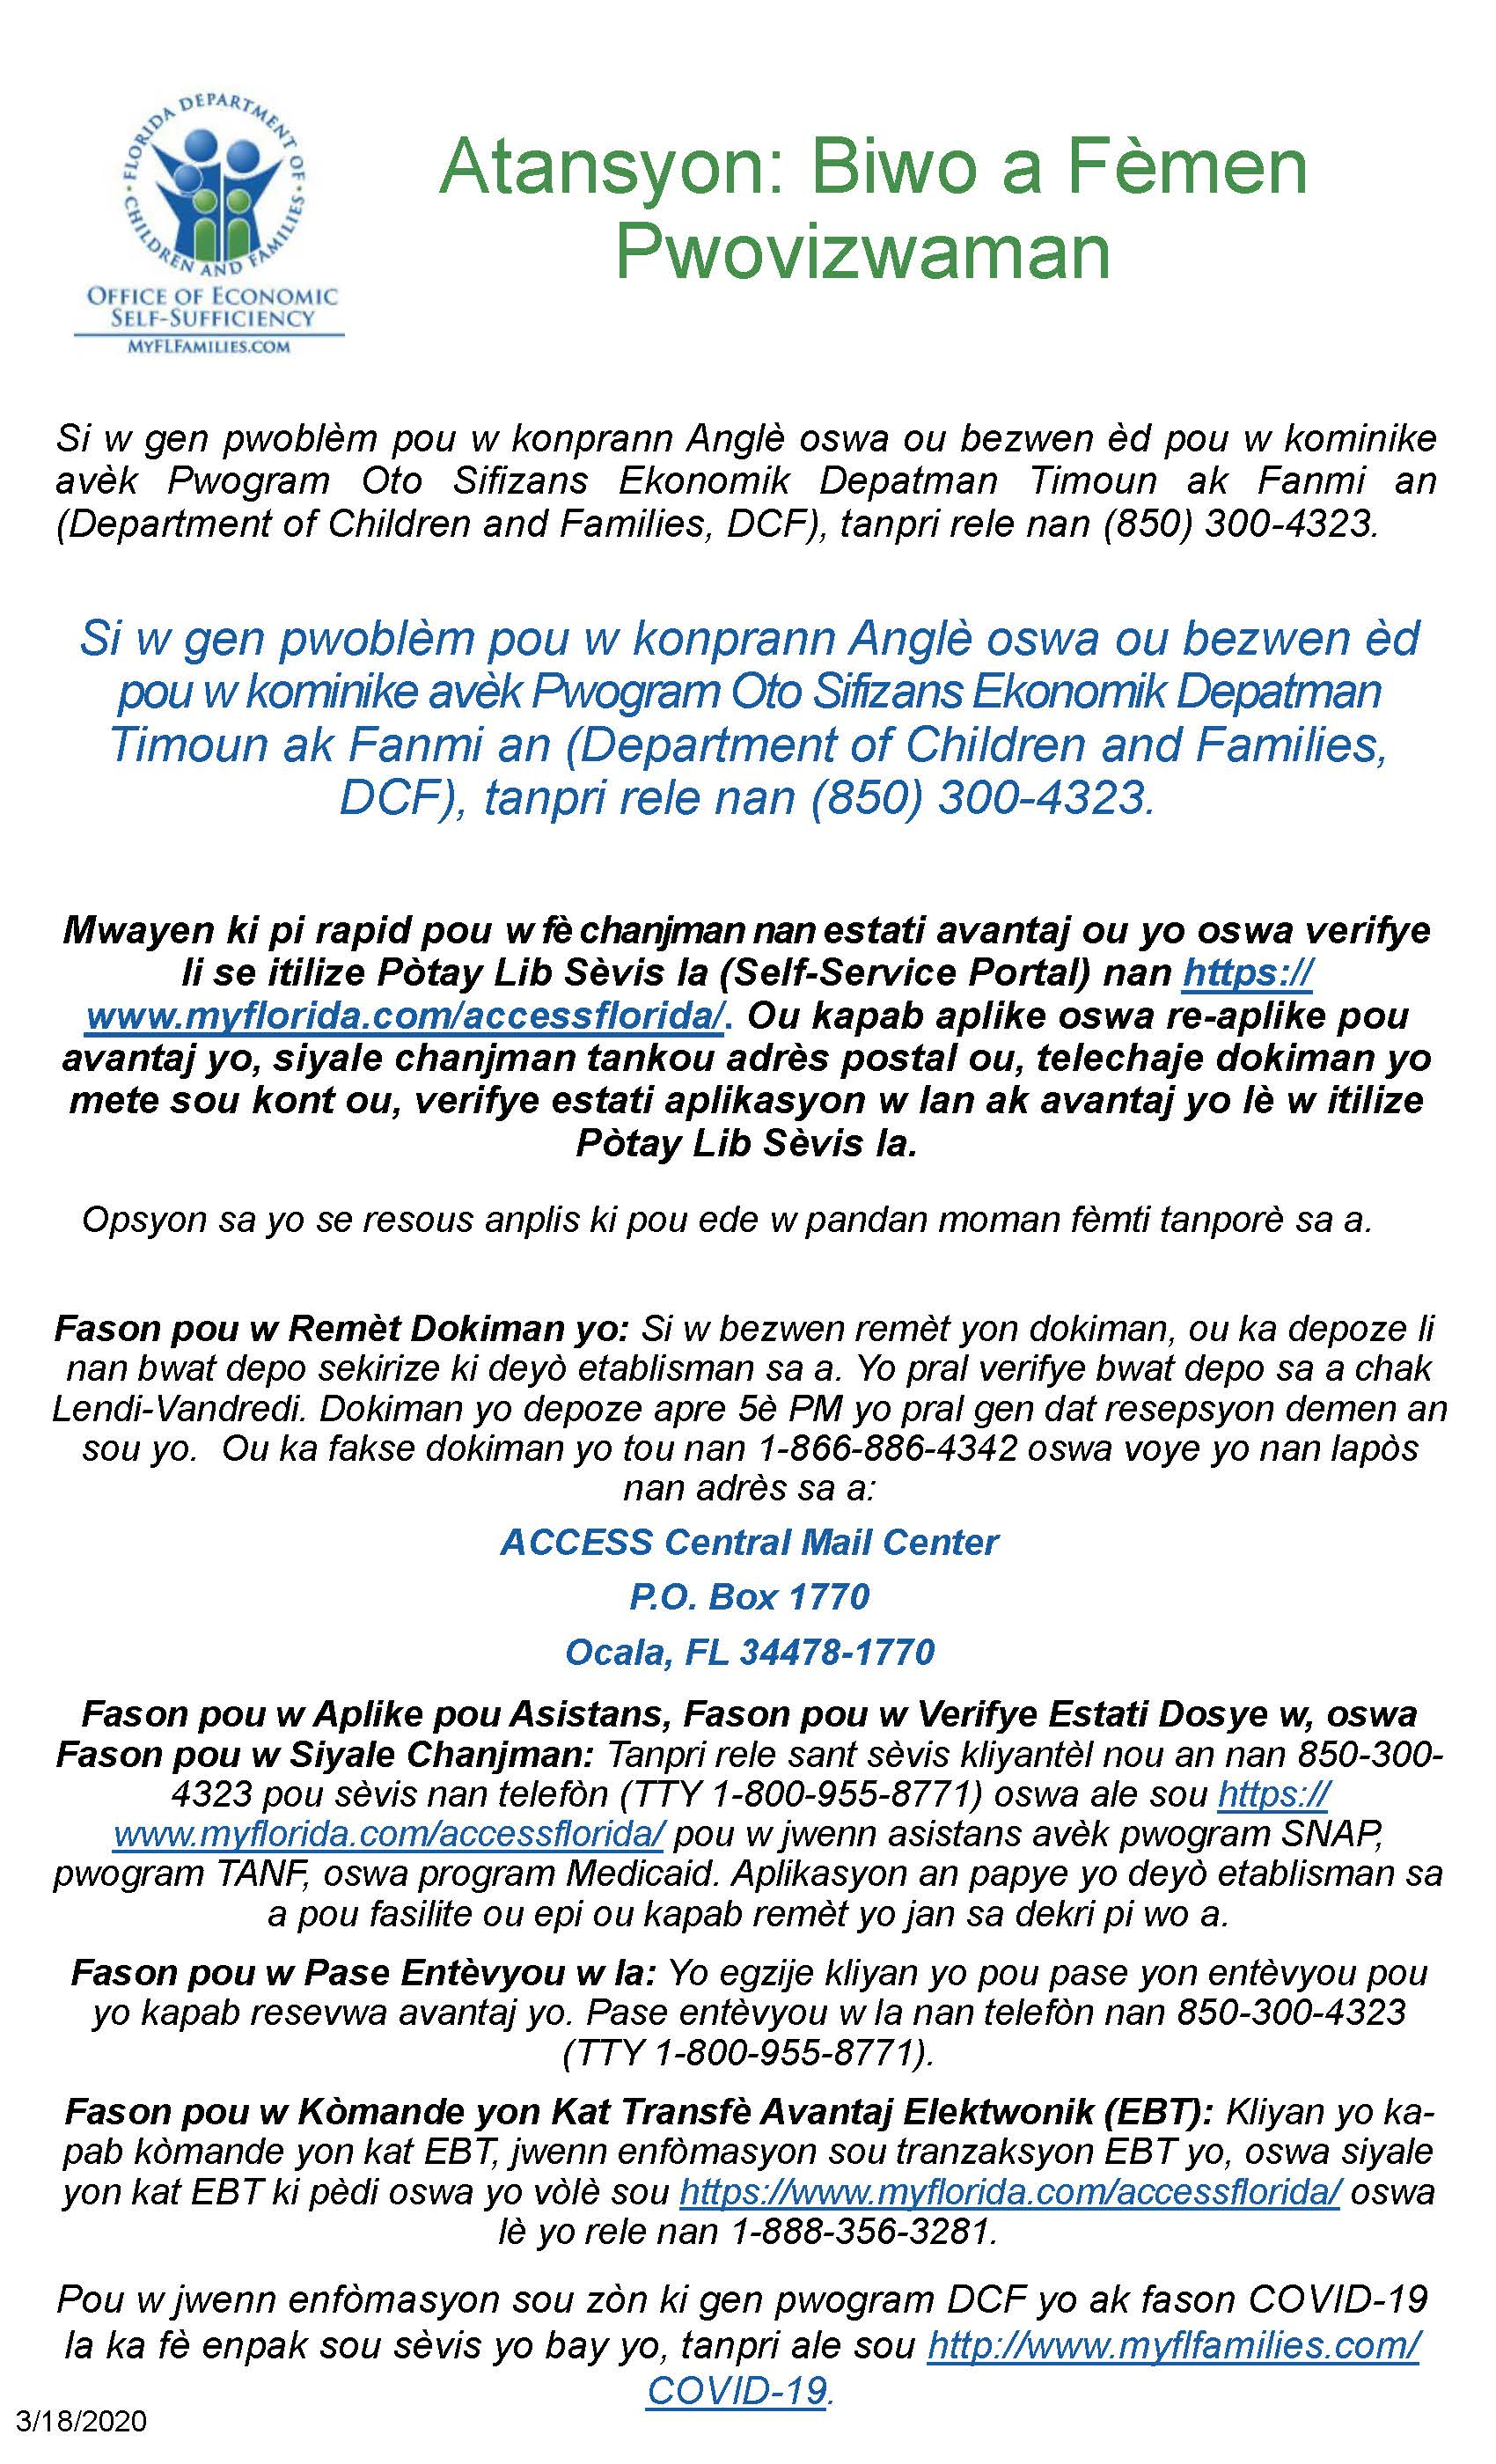 Department of Children and Families Office Closures - Kreyol